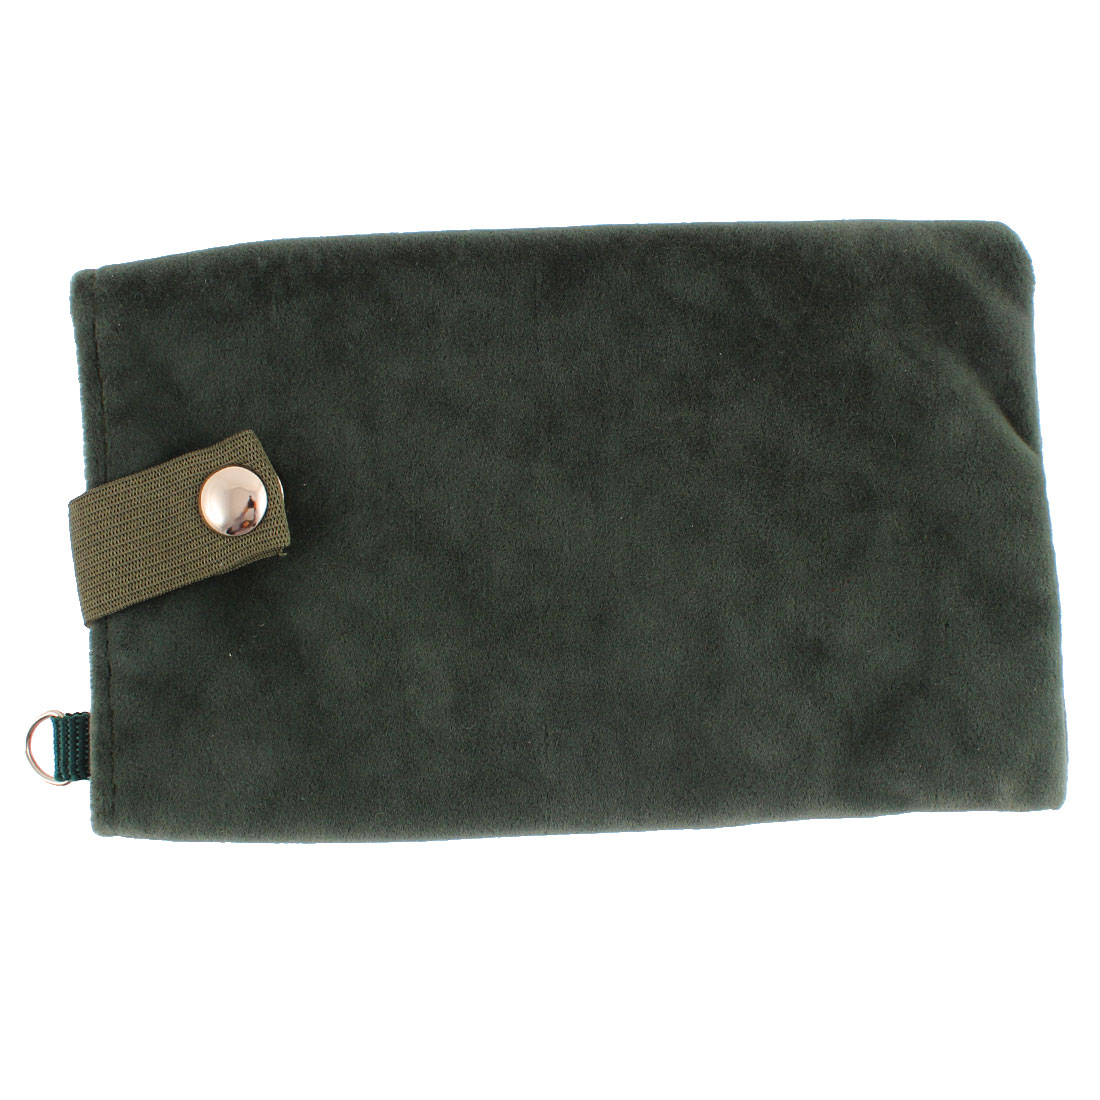 Velvet Magnetic Clasp Button Cell Phone Pouch Sleeve Bag Holder Dark Green